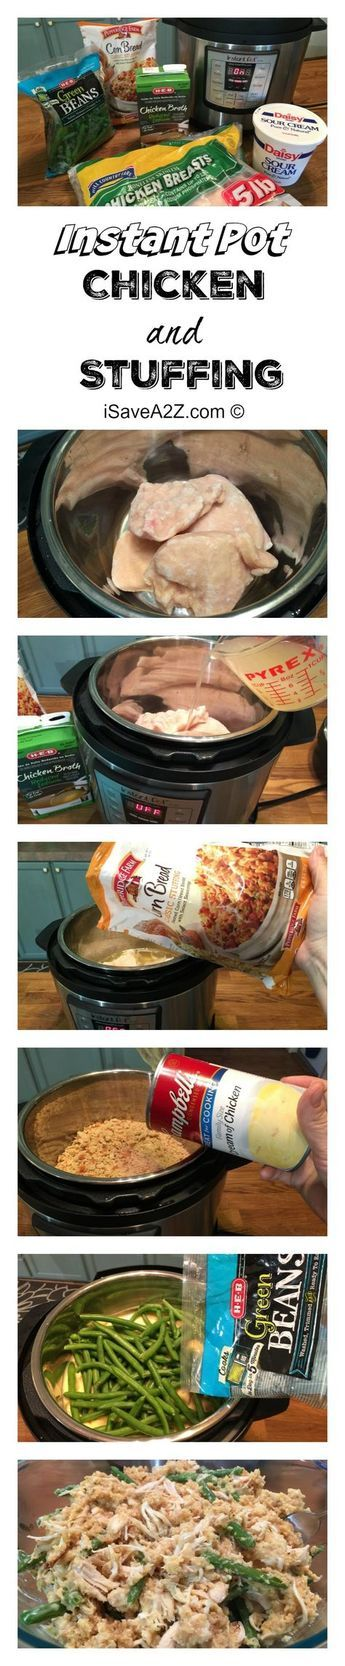 Instant Pot Chicken and Stuffing Recipe - Dinner from FROZEN TO DONE in 18 minutes!!!! iSaveA2Z.com